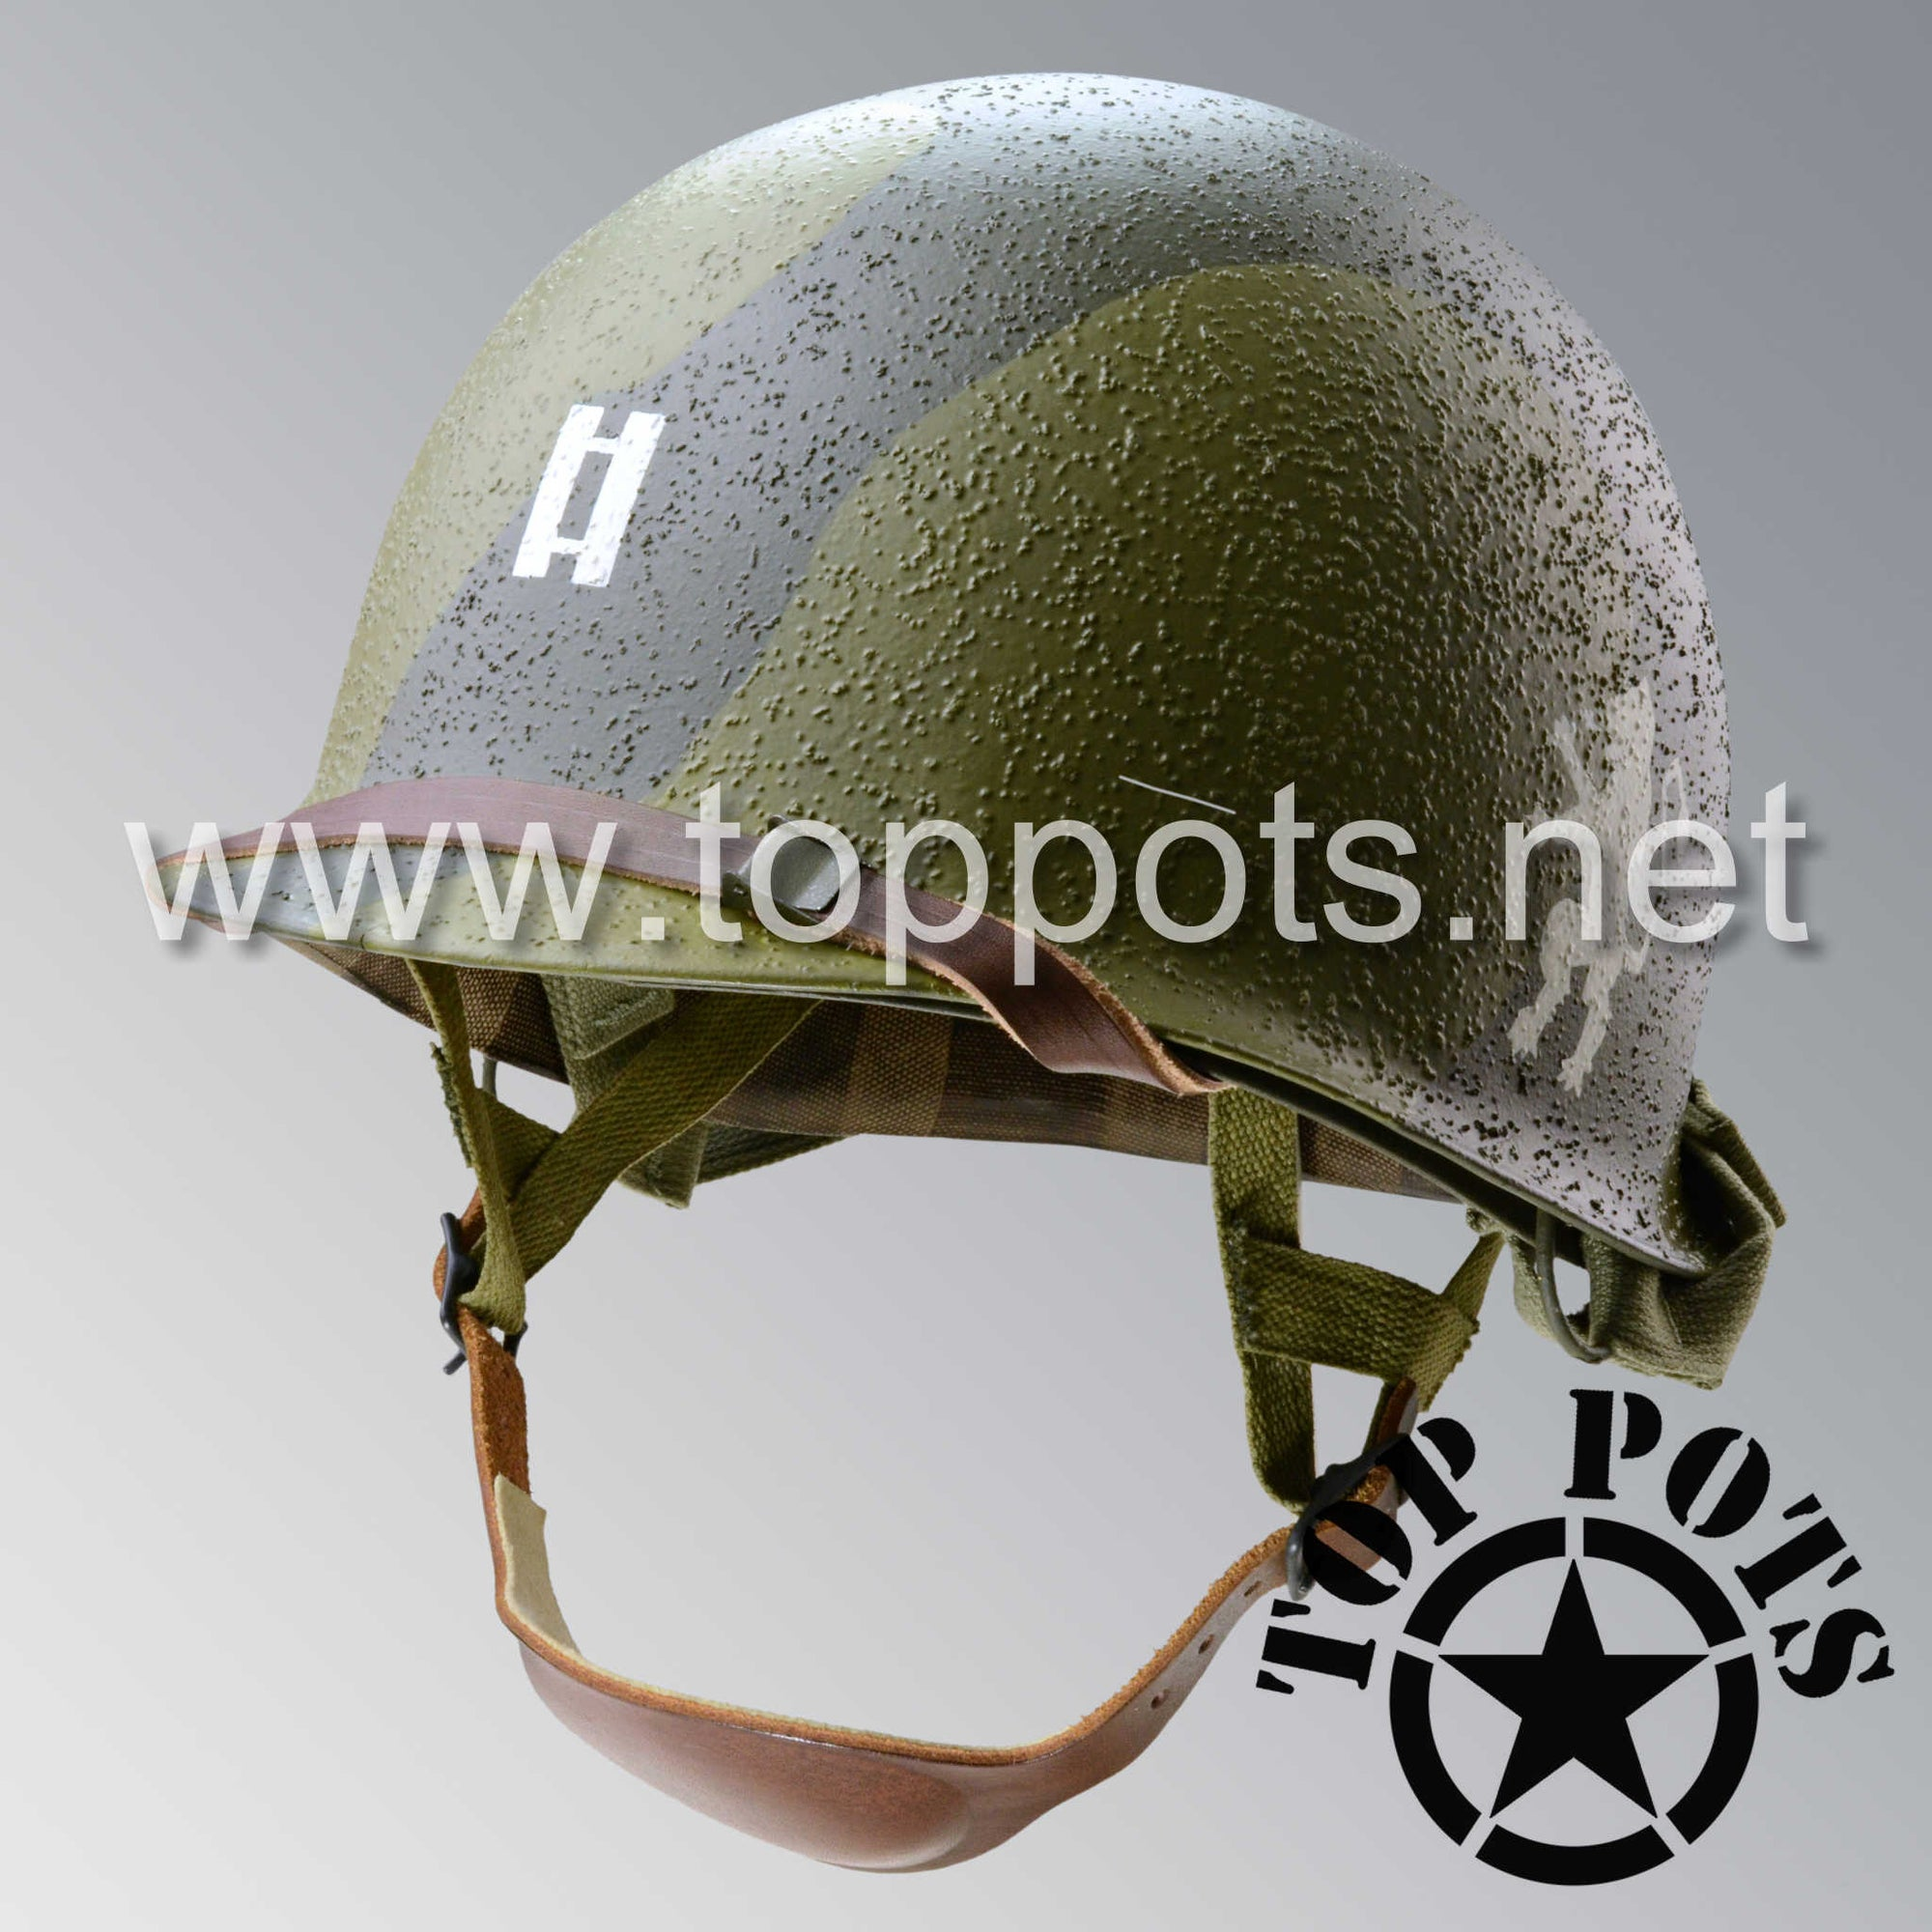 Image 1 of WWII US Army Restored Original M2 Paratrooper Airborne Helmet D Bale Shell and Liner with 505th PIR Officer Pathfinder Camouflage Emblem